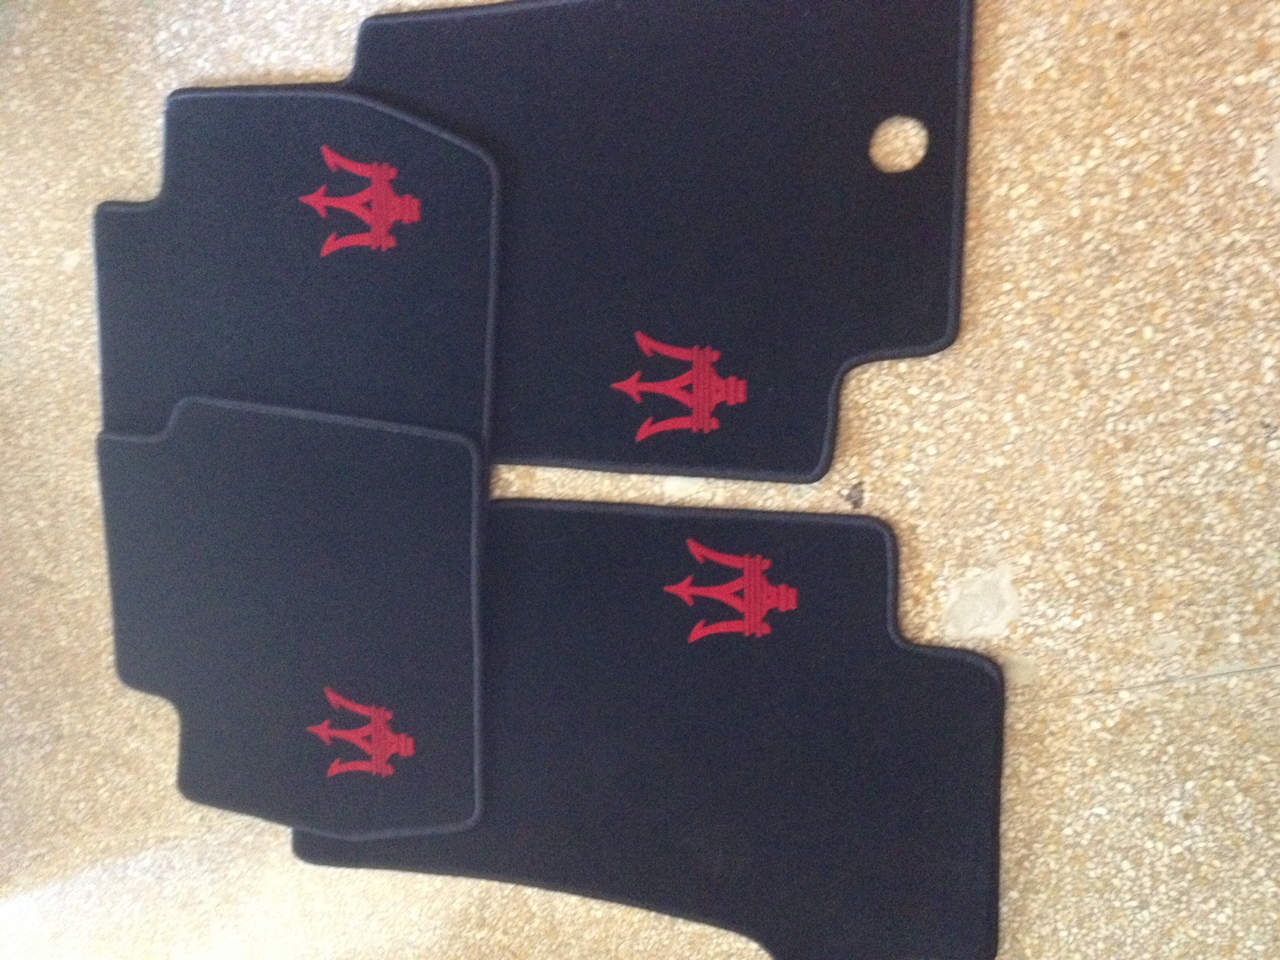 Awesome Floor Mats I Bought Off Ebay For My Gran Turismo